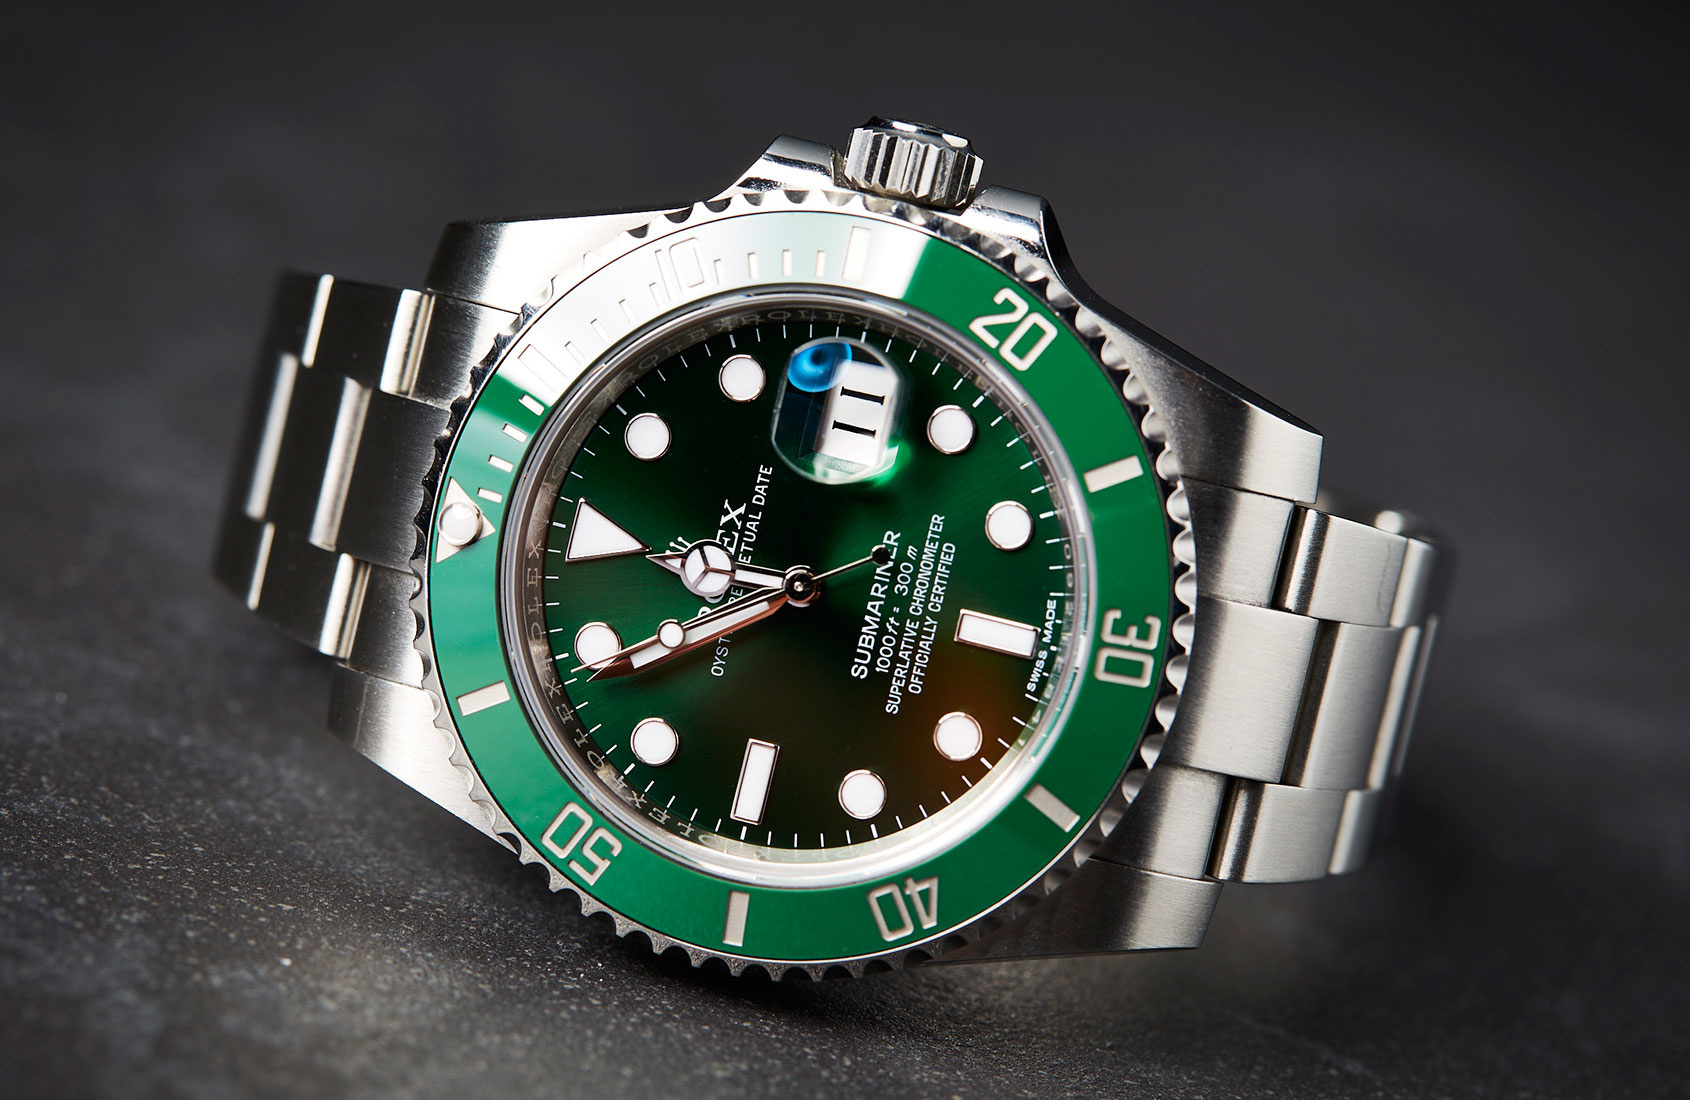 The Rolex Submariner